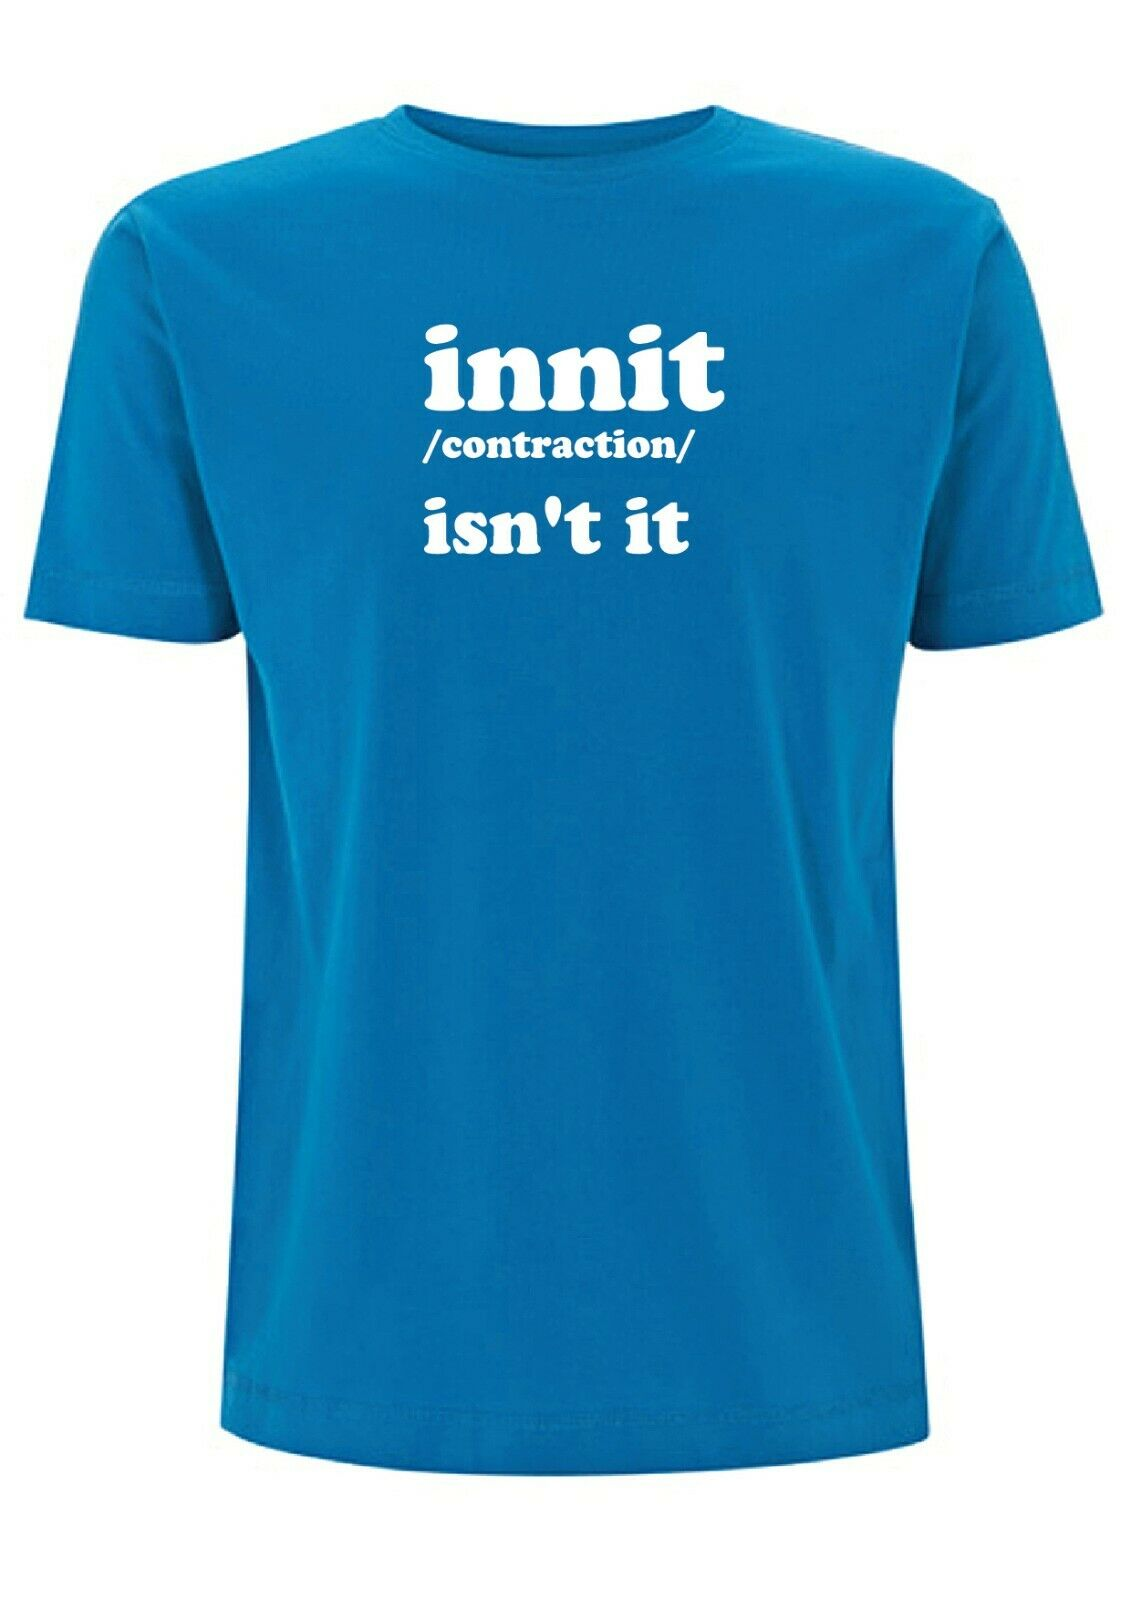 Innit Meaning T Shirt Mens Top isnt it slang yorkshire Urban Dictionary Words 2020 High quality Brand T shirt Casual Short sleev image